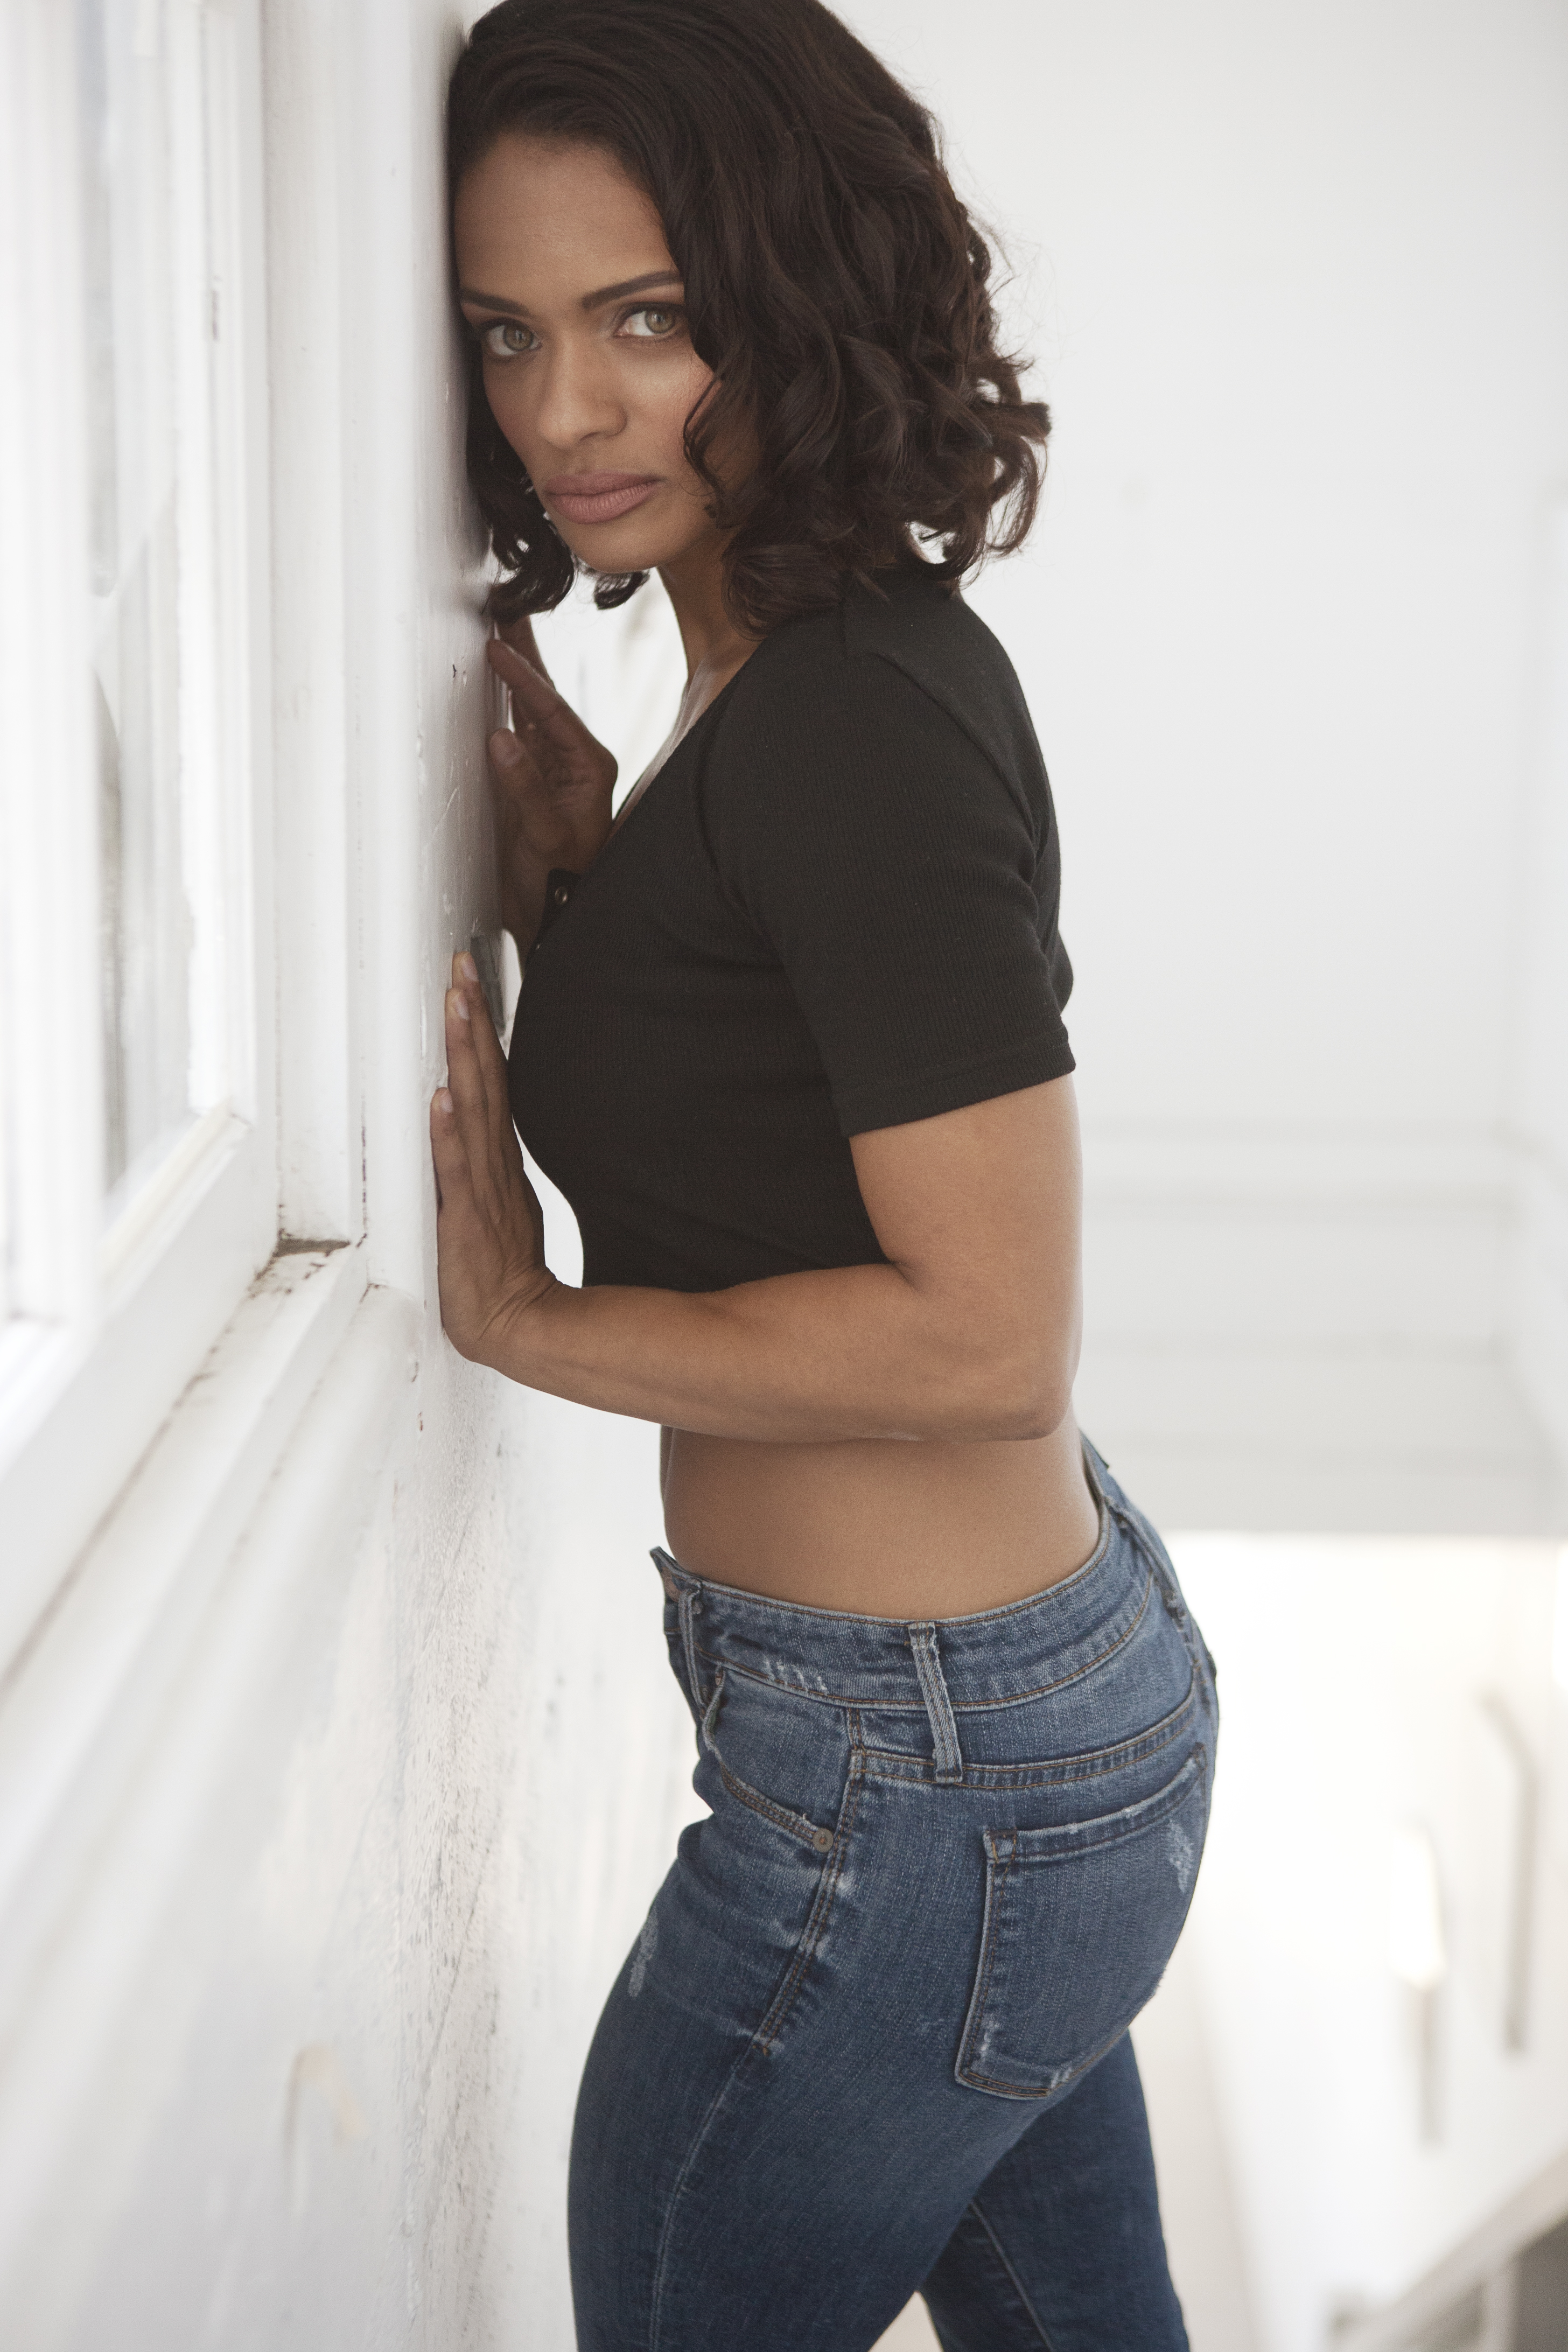 Discussion on this topic: Athena Karkanis, kandyse-mcclure/